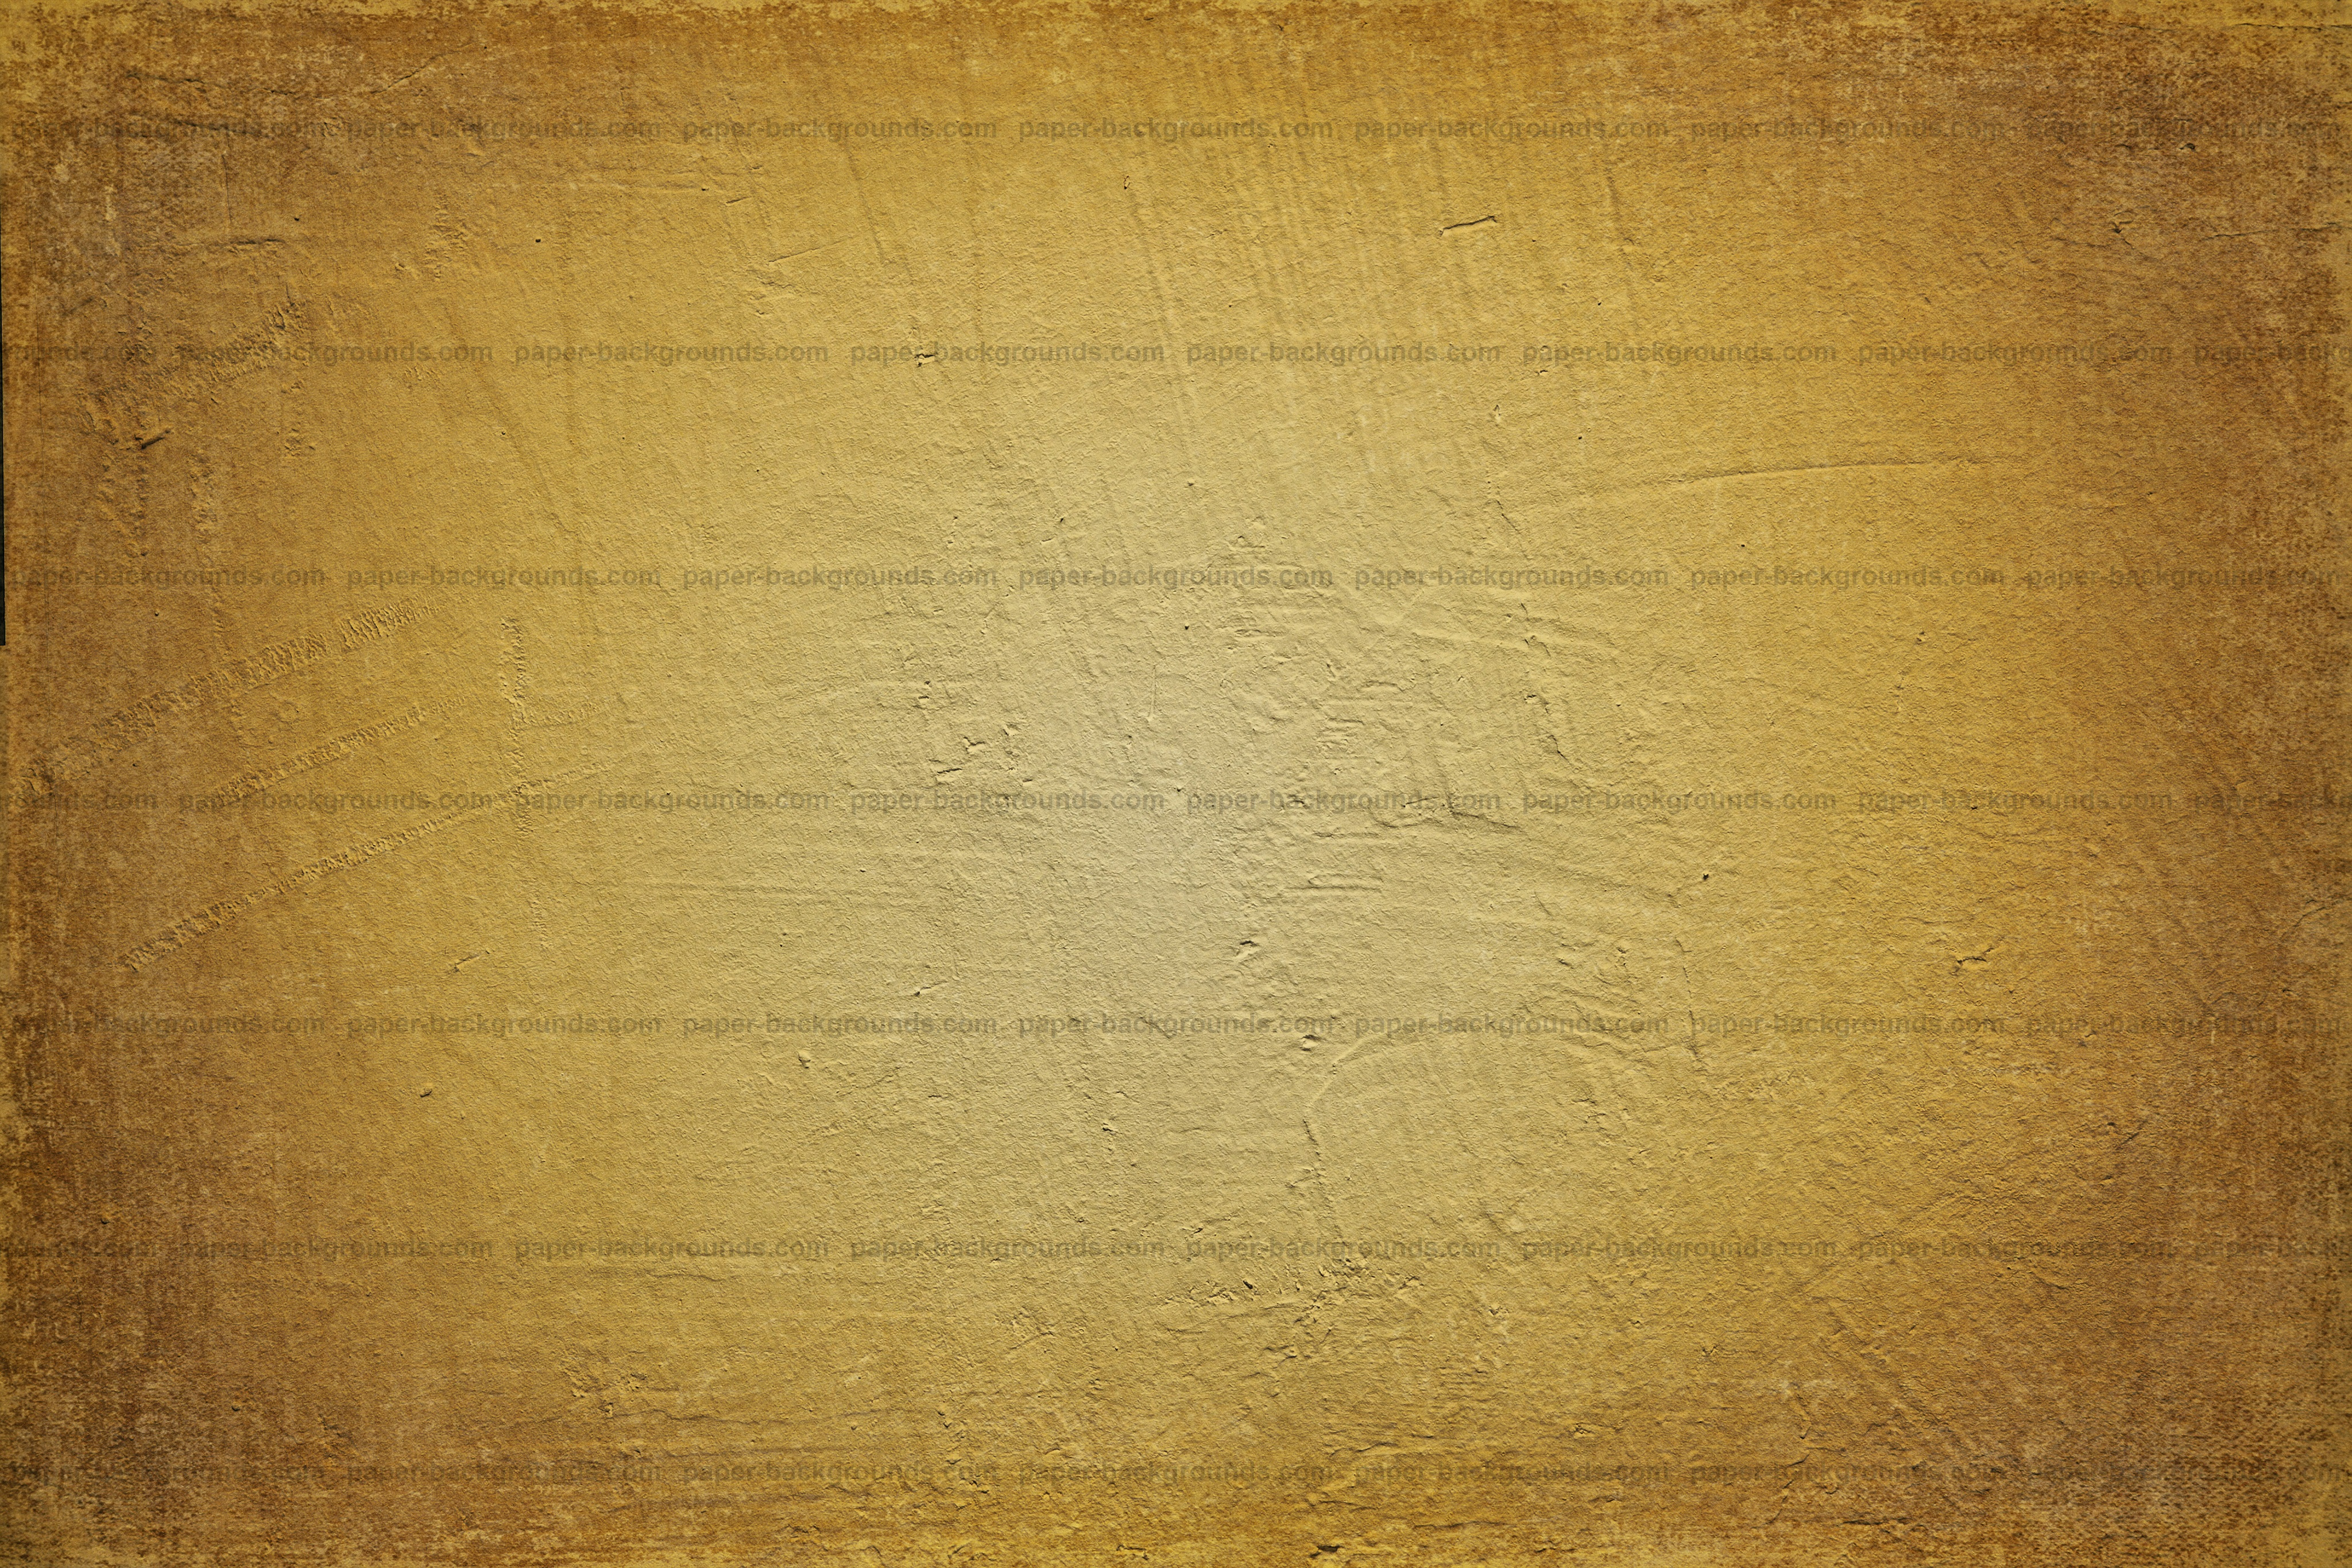 Vintage Yellow Background Wallpaper High Resolution 4096 X 2731 Pixels Large JPG Image